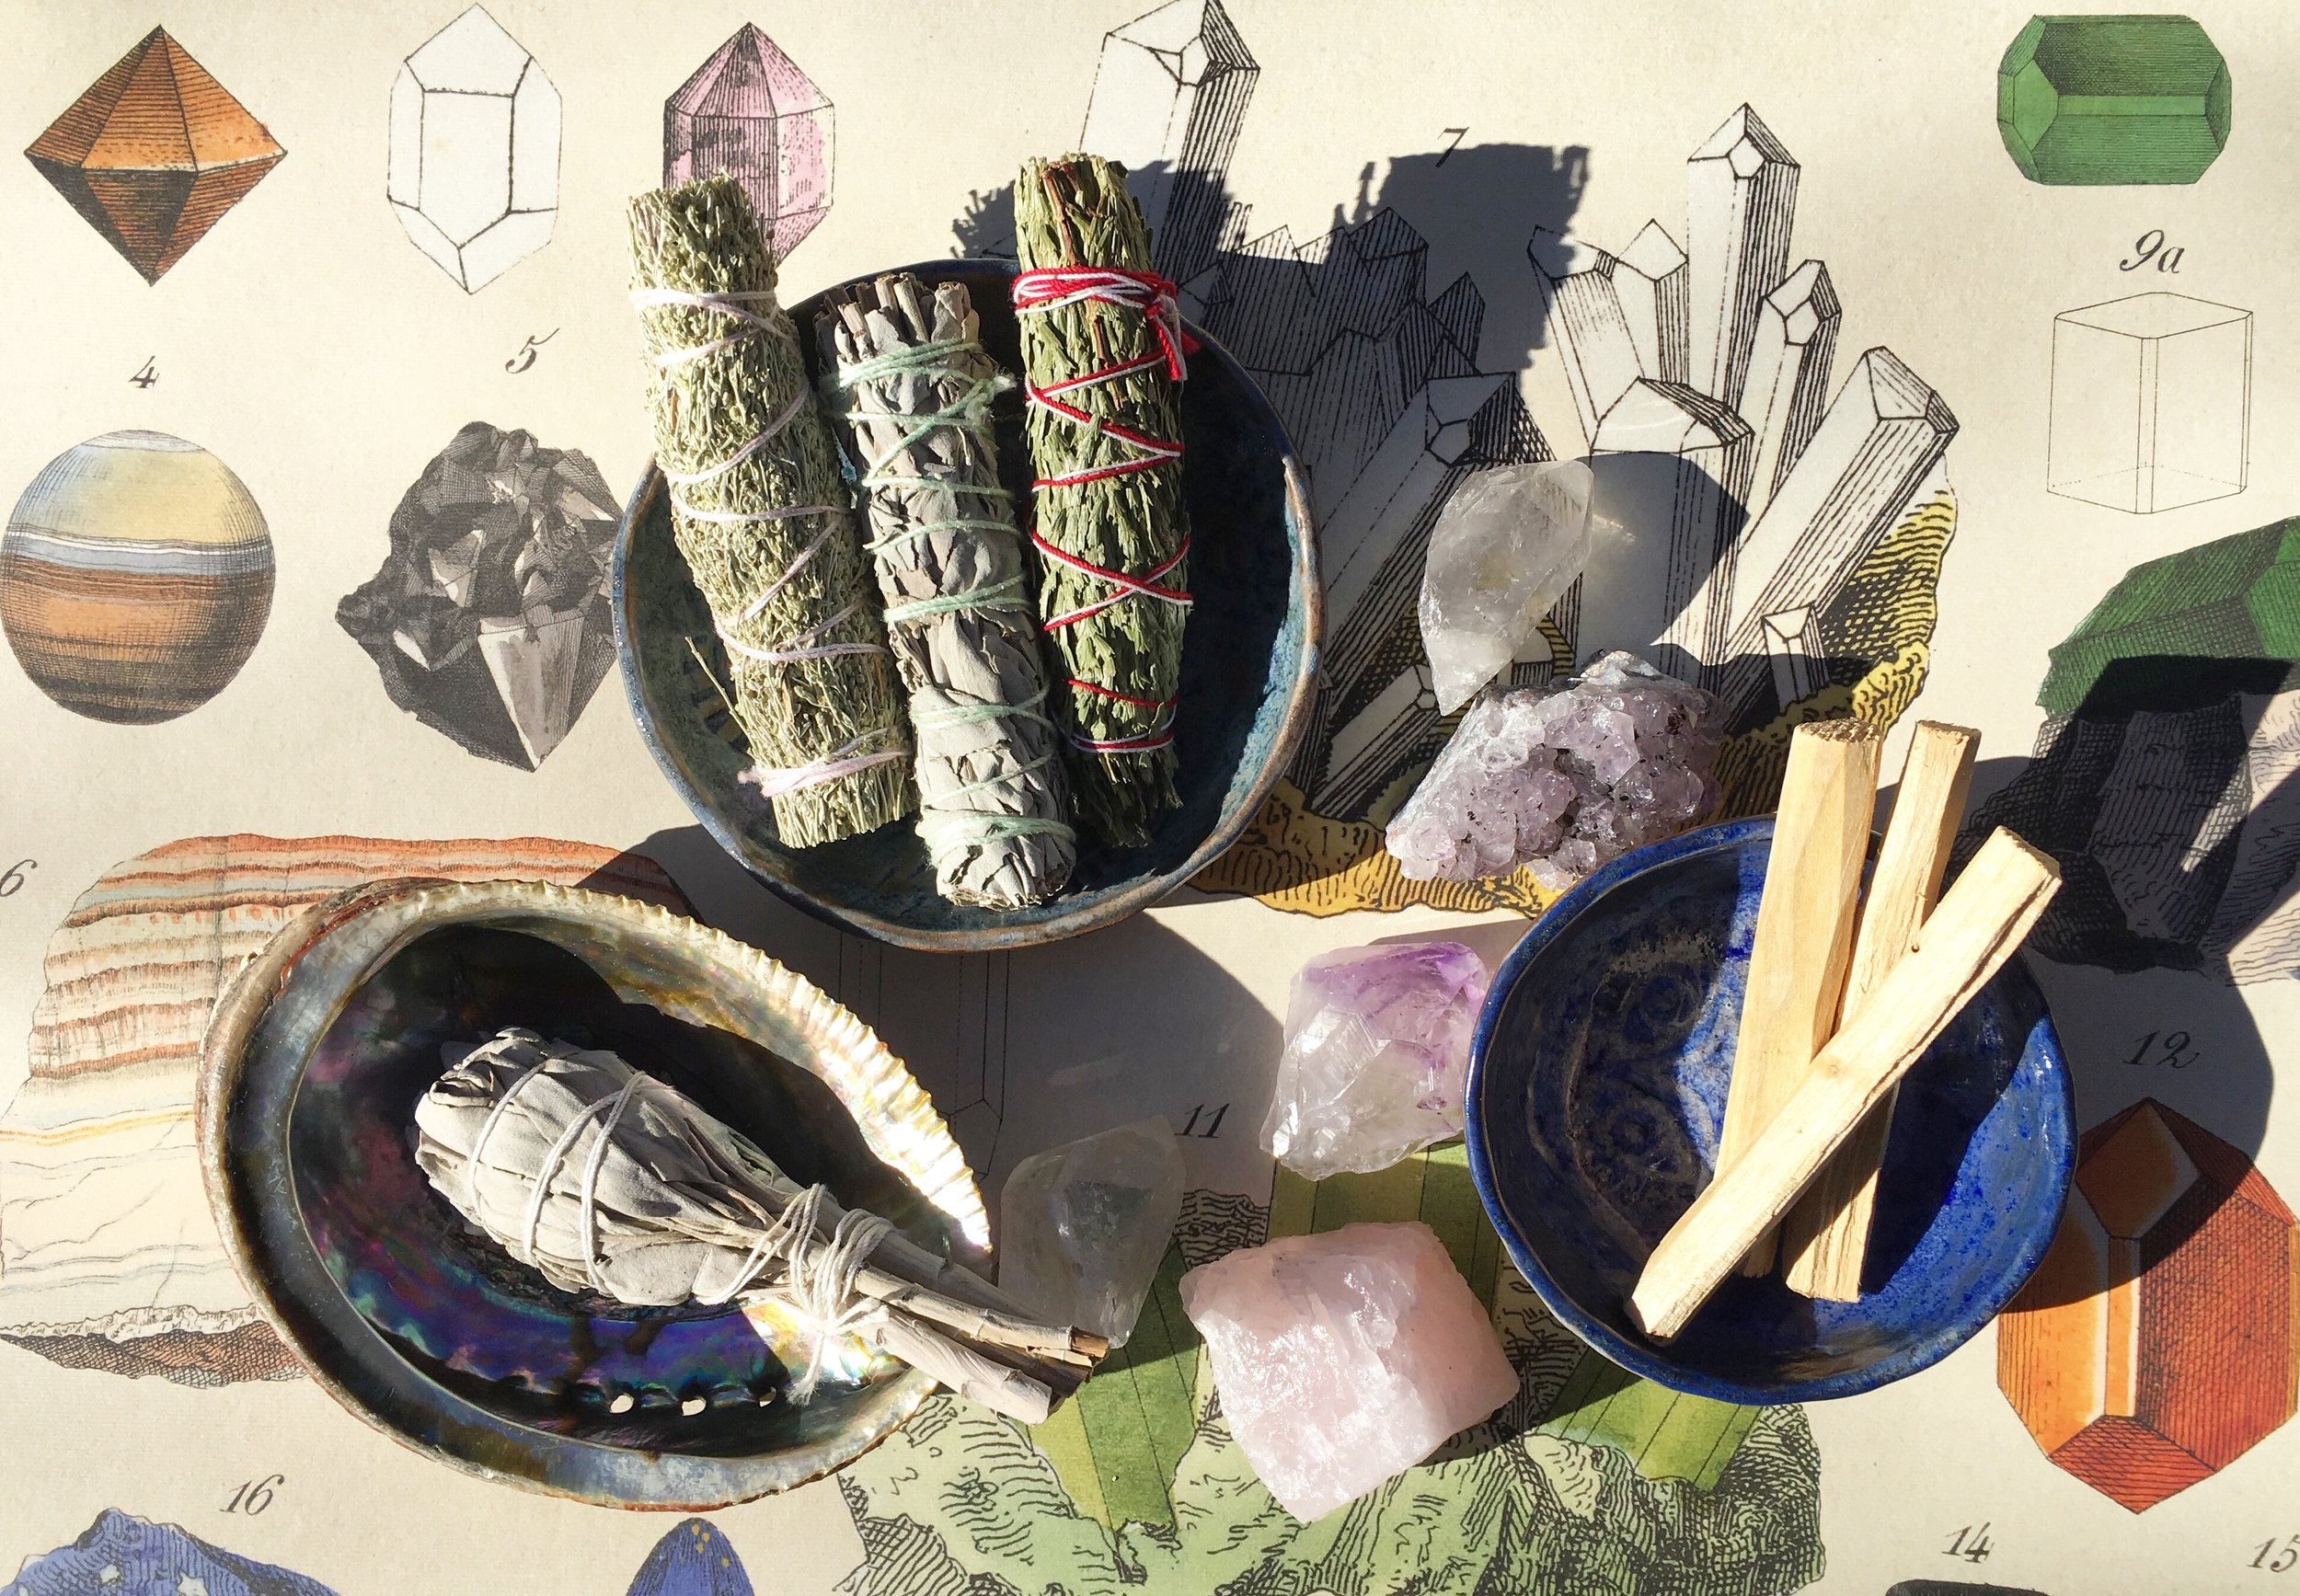 mineralogy paper by Cavallini Papers / California blue sage + white sage / palo santo wood / abalone shell / rose quartz / clear quartz / amethyst